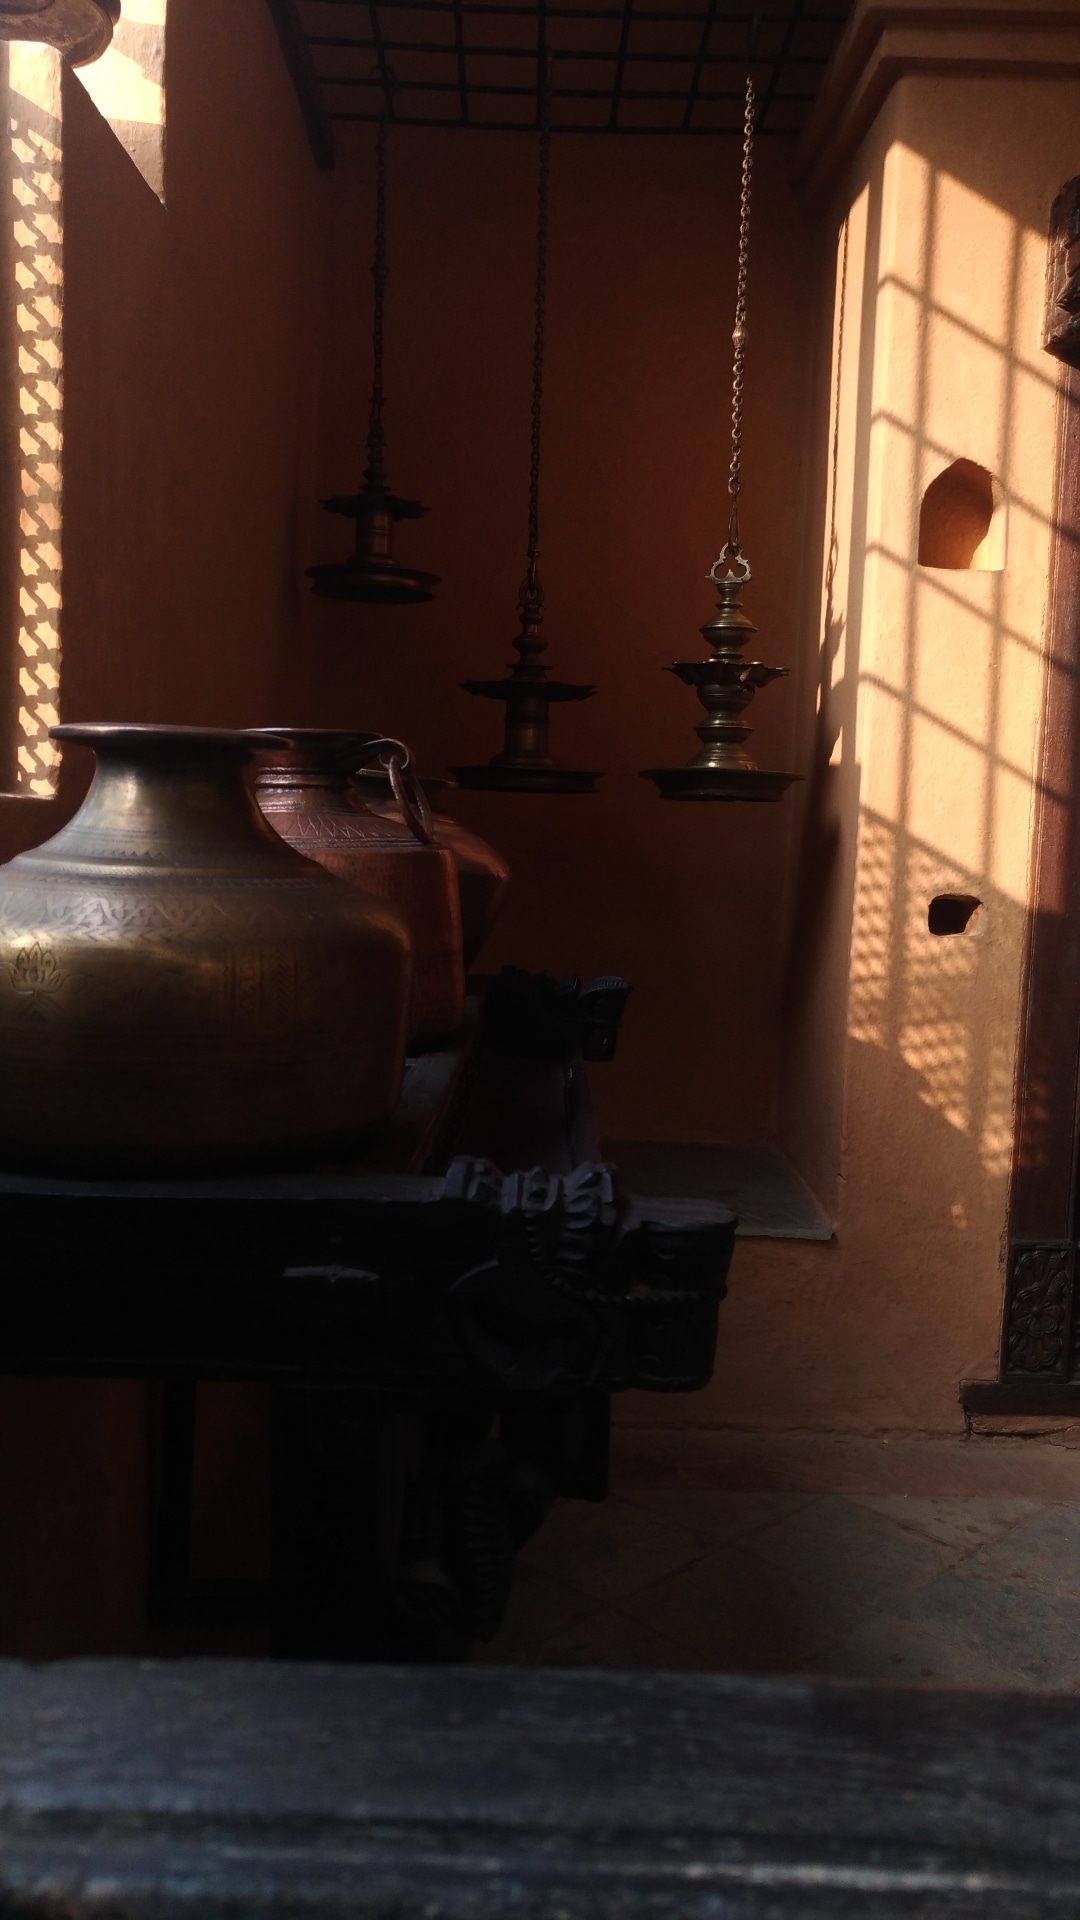 Large jars in a room